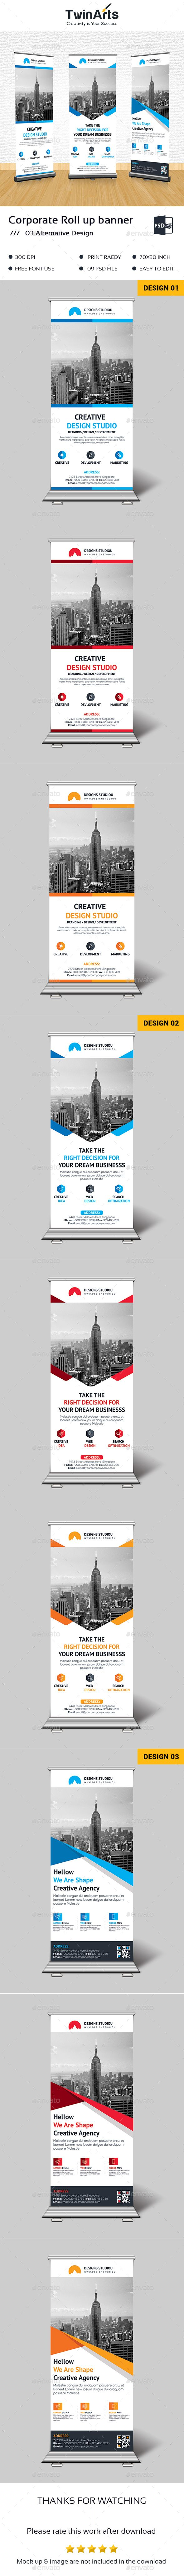 Corporate Roll up Banner Template | Banner template, Banners and ...